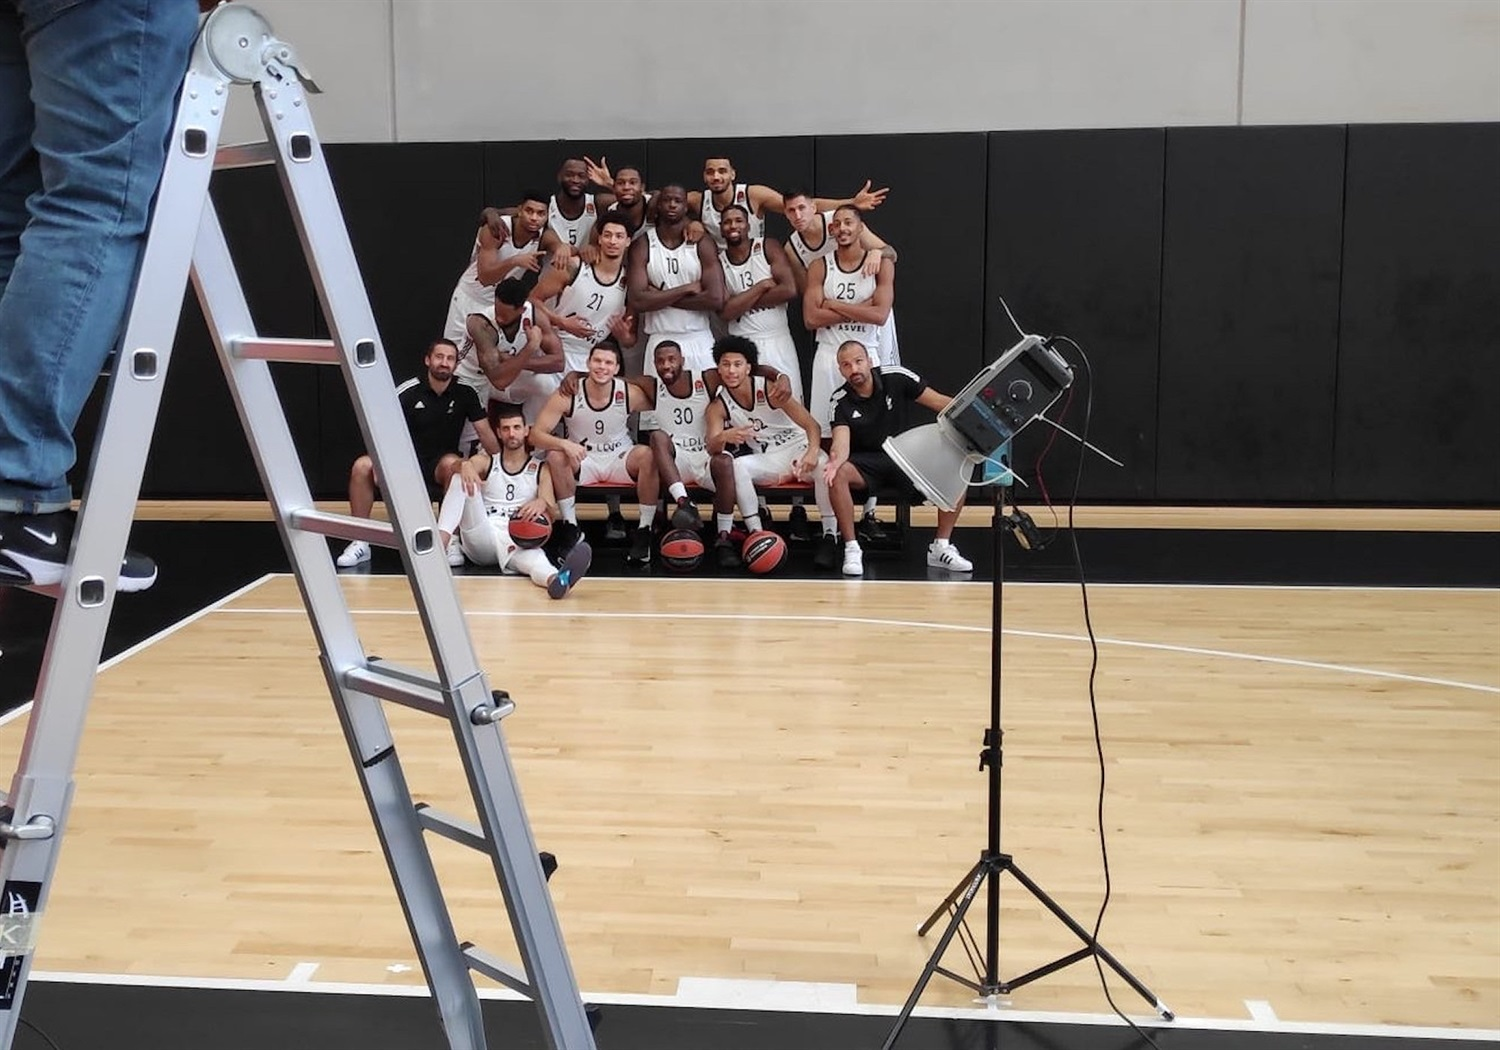 LDLC ASVEL Villeurbanne Media Day - EB20